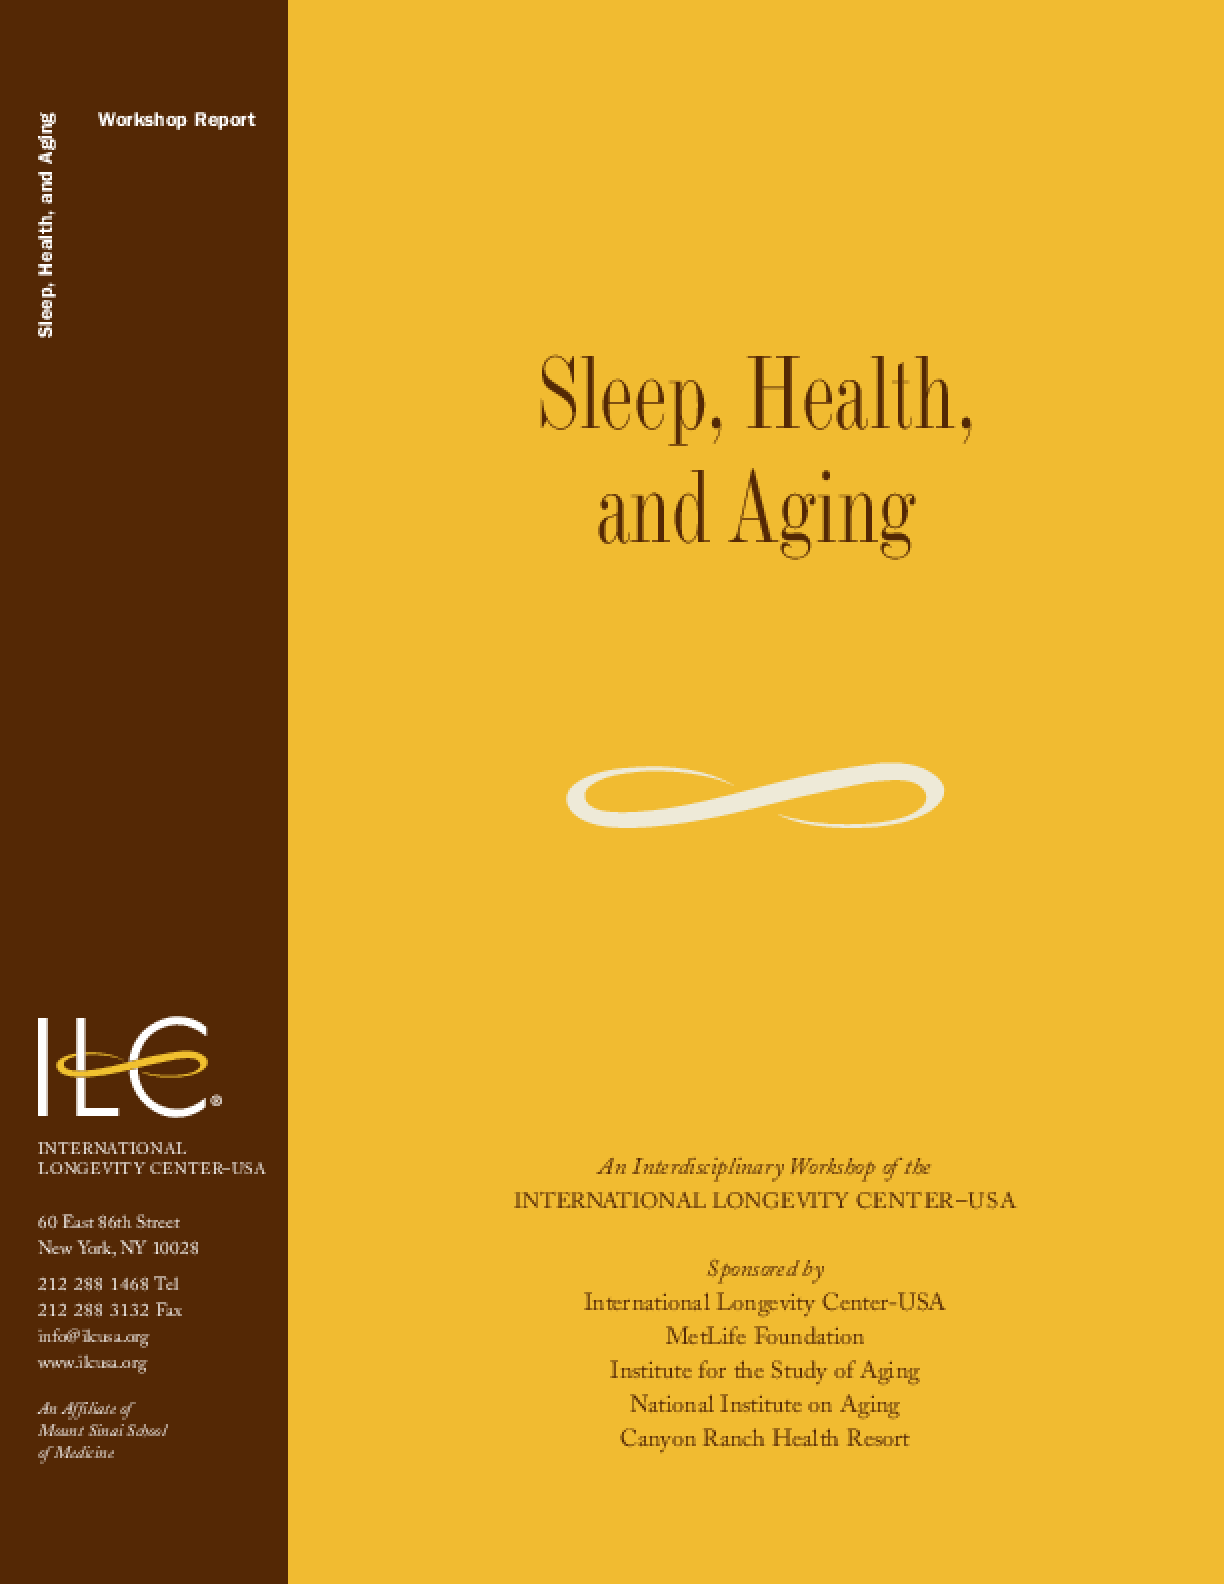 Sleep, Health, and Aging